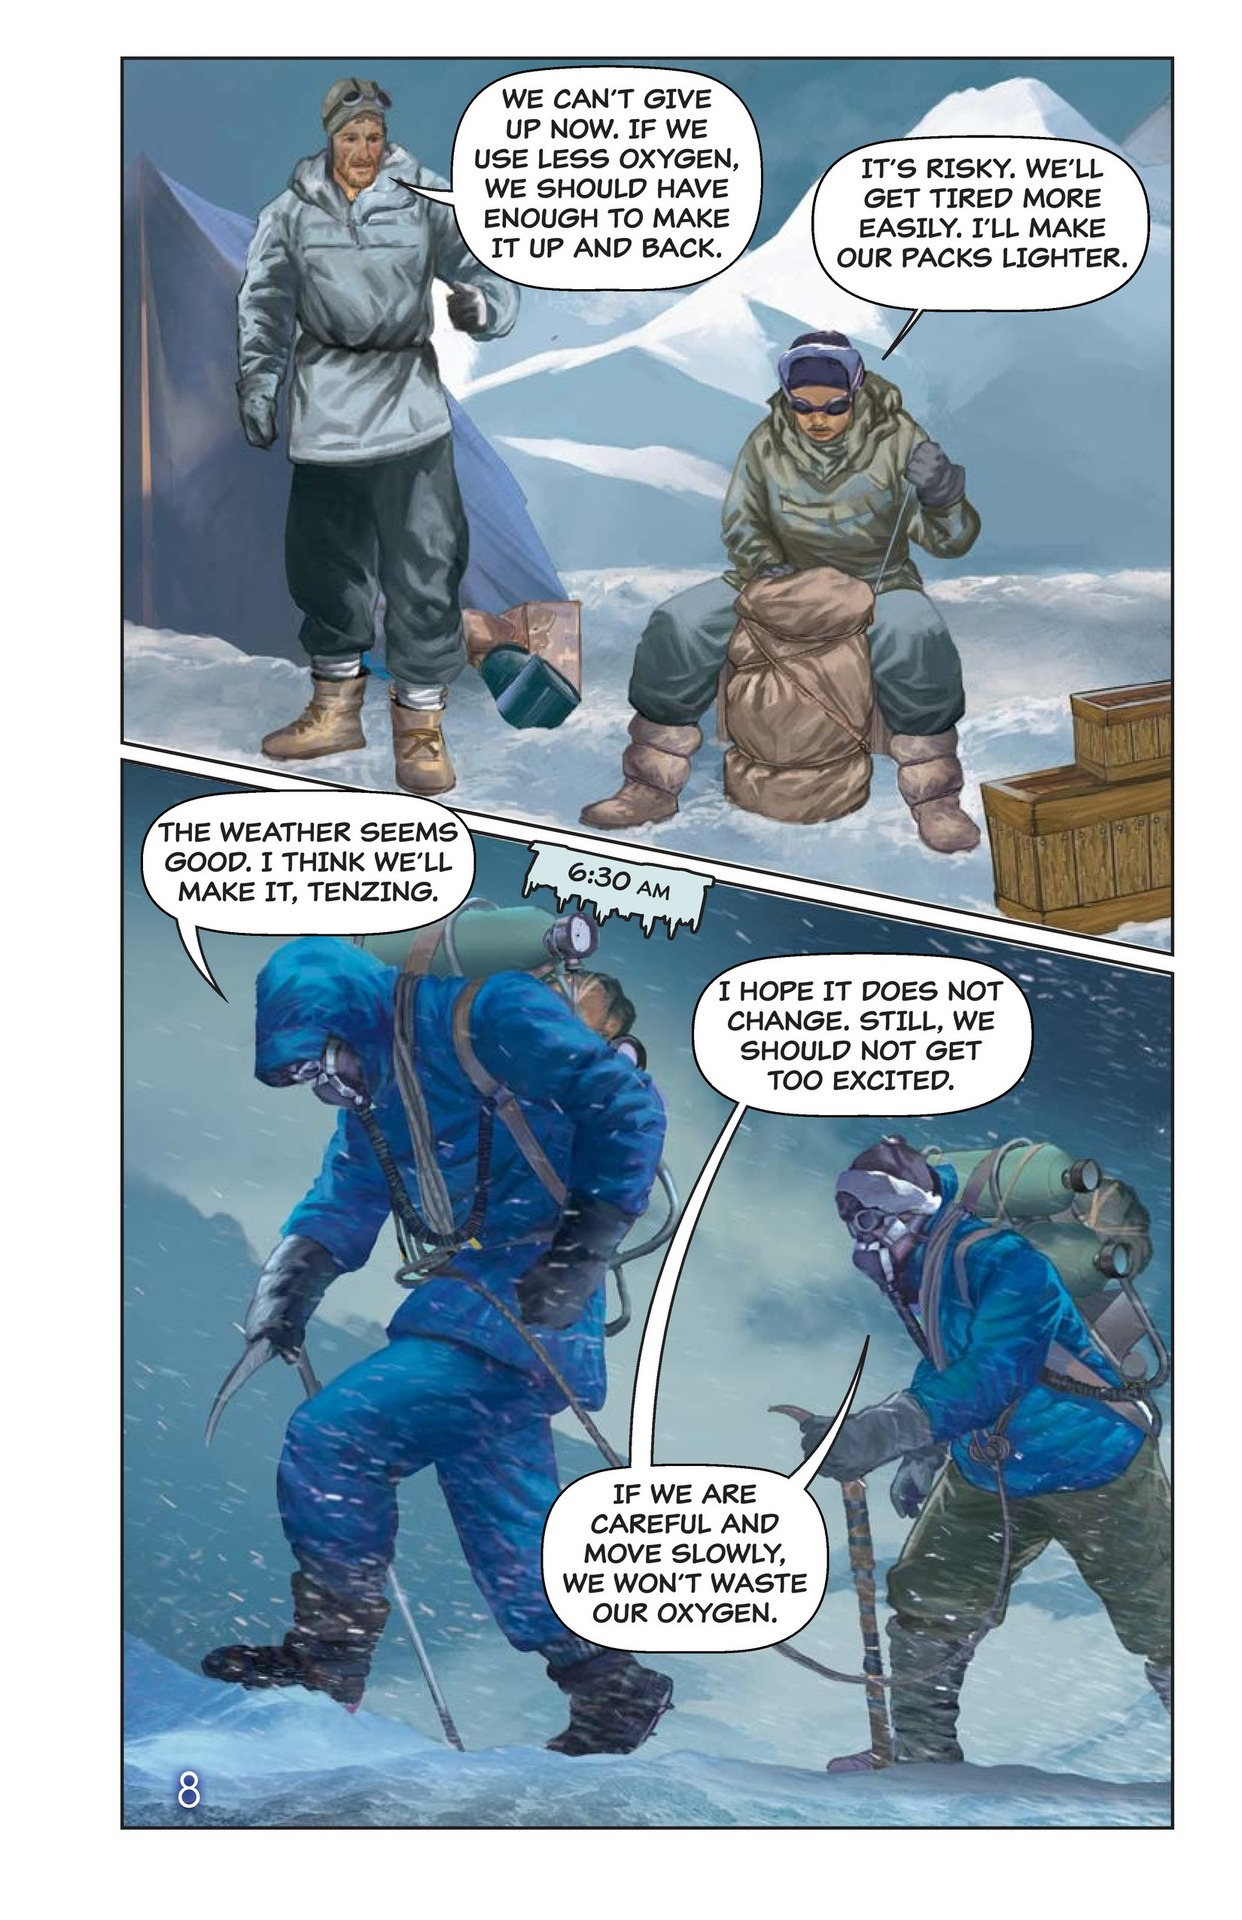 Book Preview For Hilary, Norgay, and Mount Everest Page 9